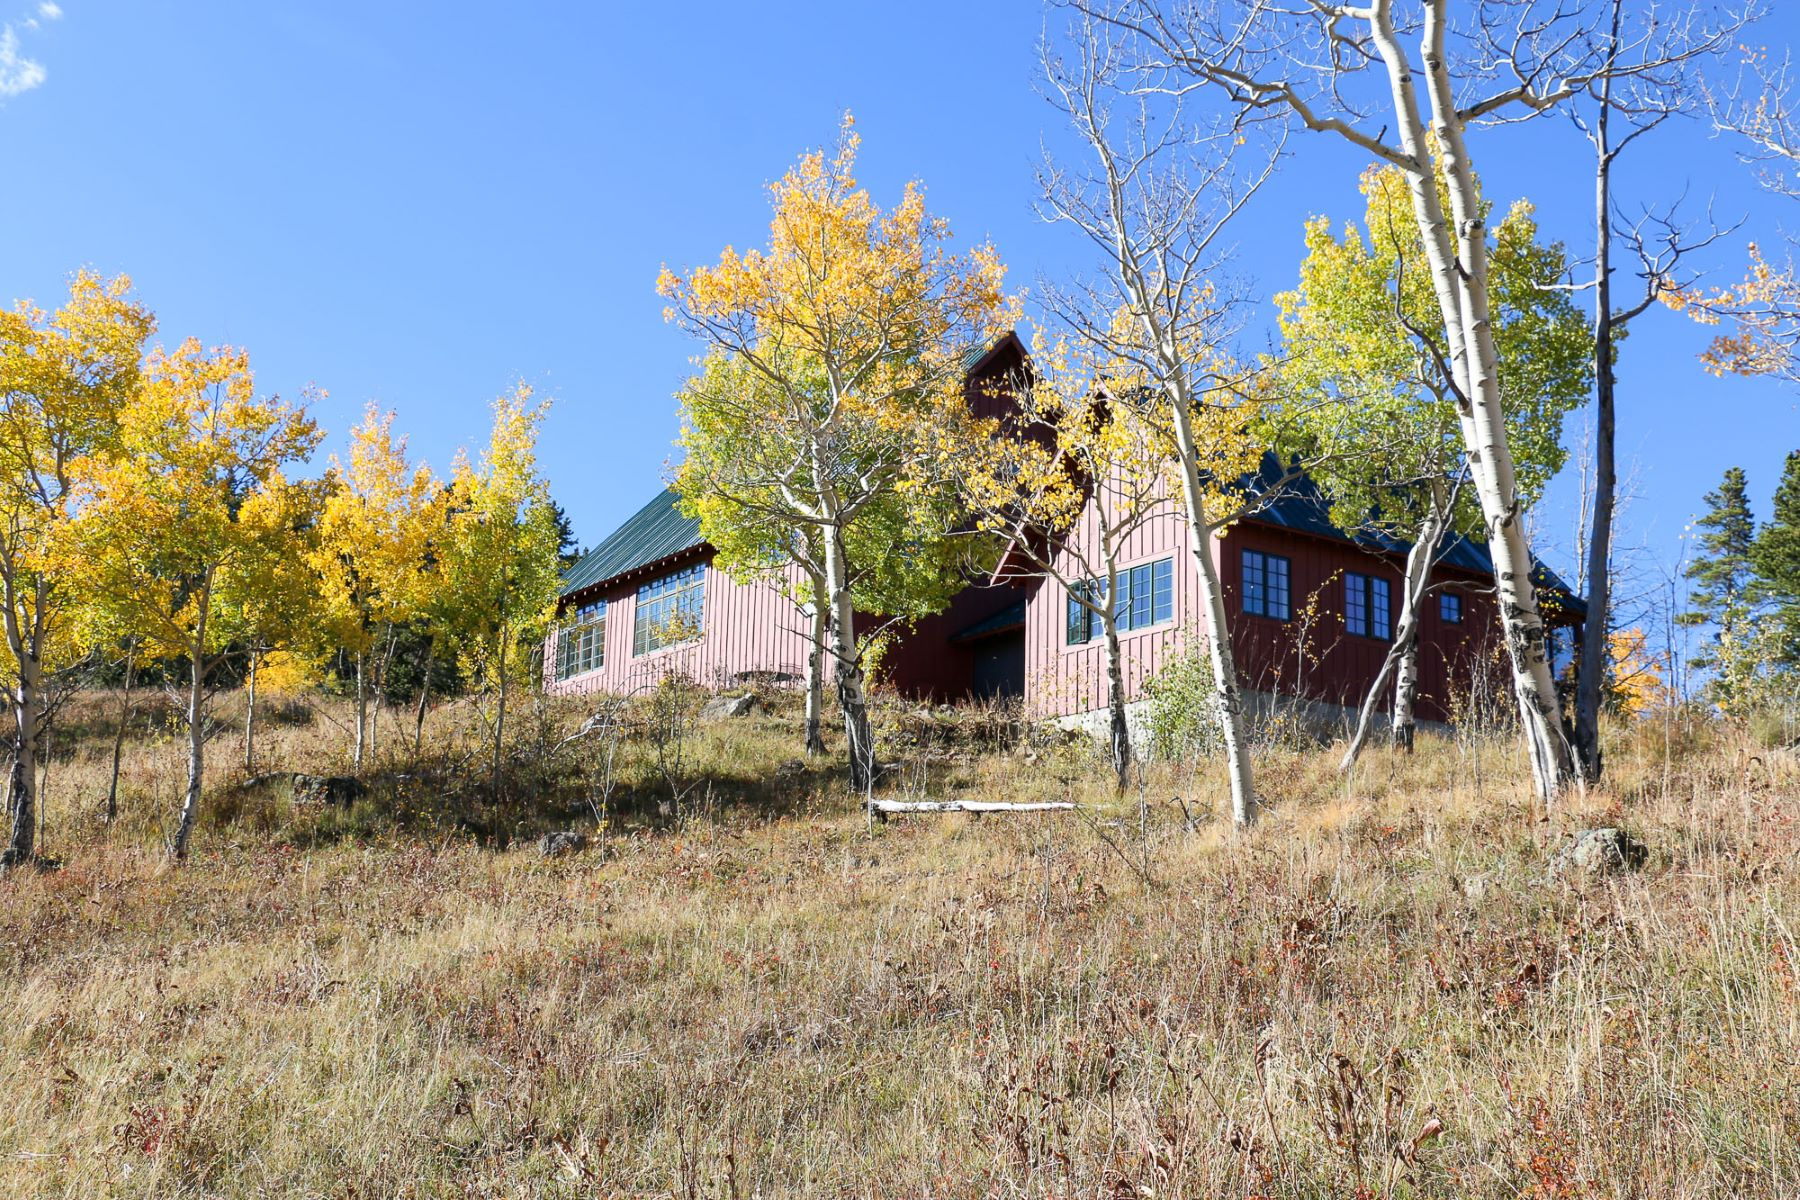 Casa Unifamiliar por un Venta en Retreat on Red Mountain 475 Oversteeg Gulch, Crested Butte, Colorado, 81224 Estados Unidos